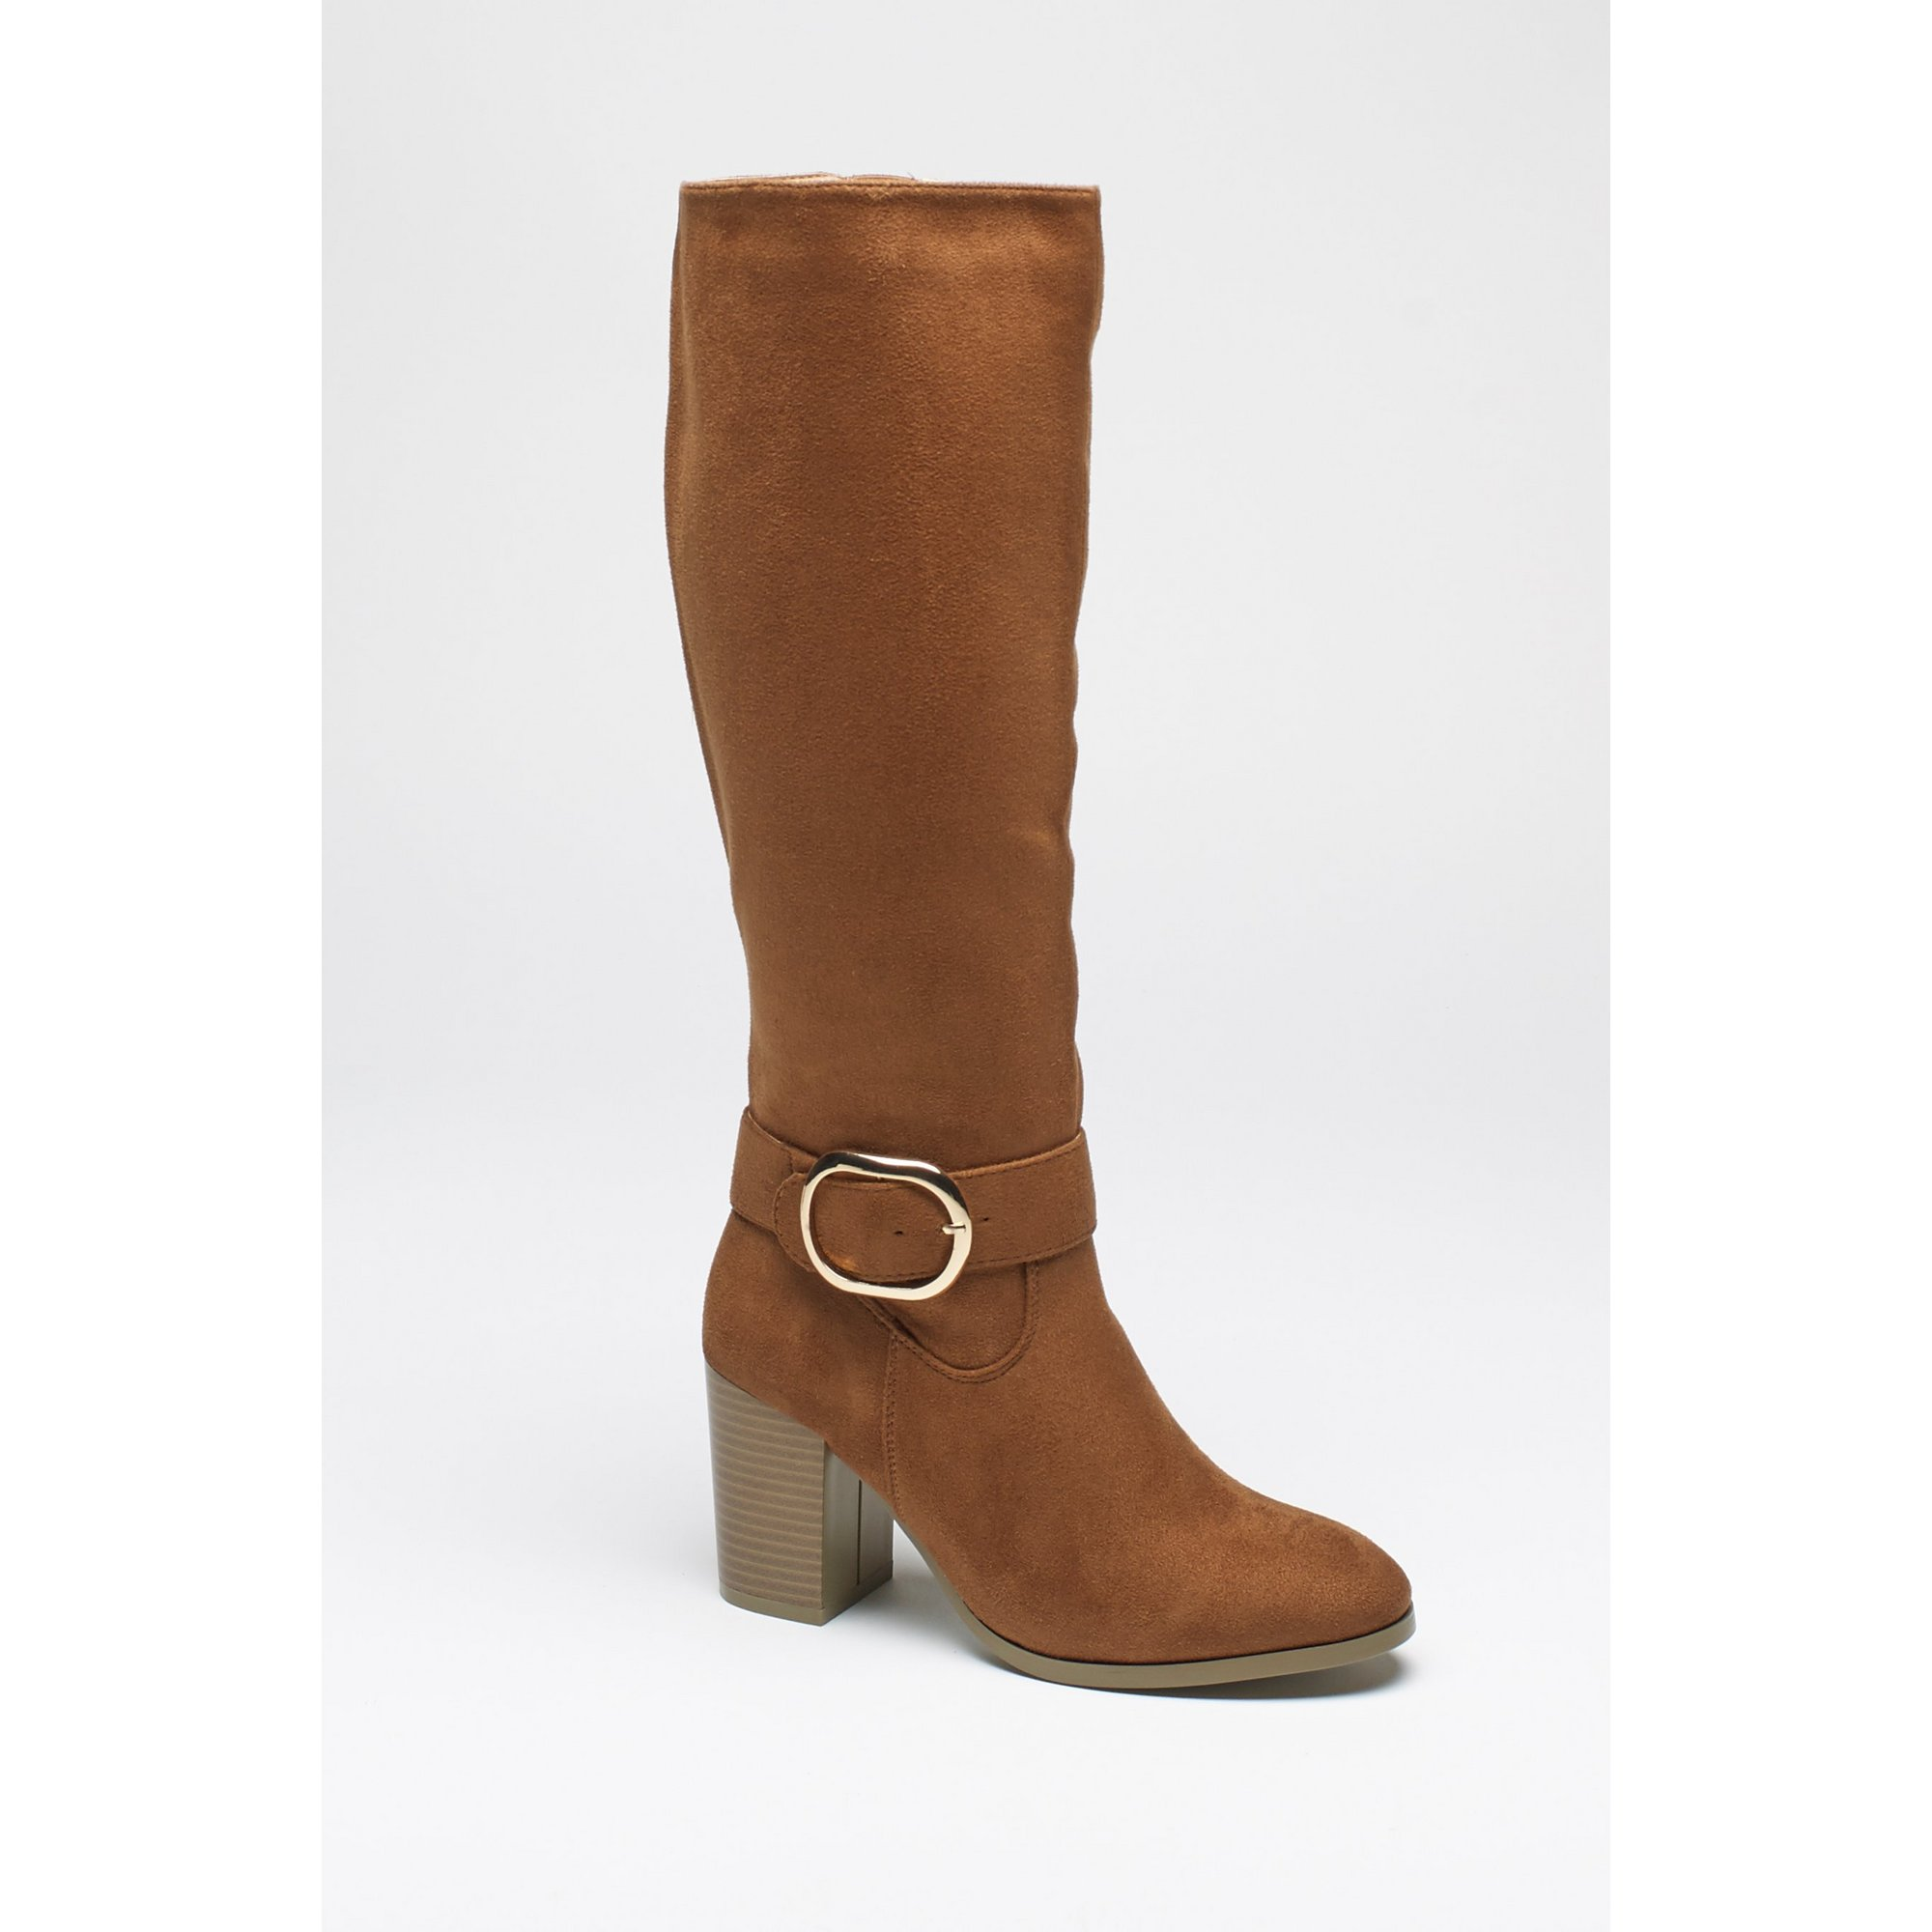 Image of Block Heel Long Boots with Buckle